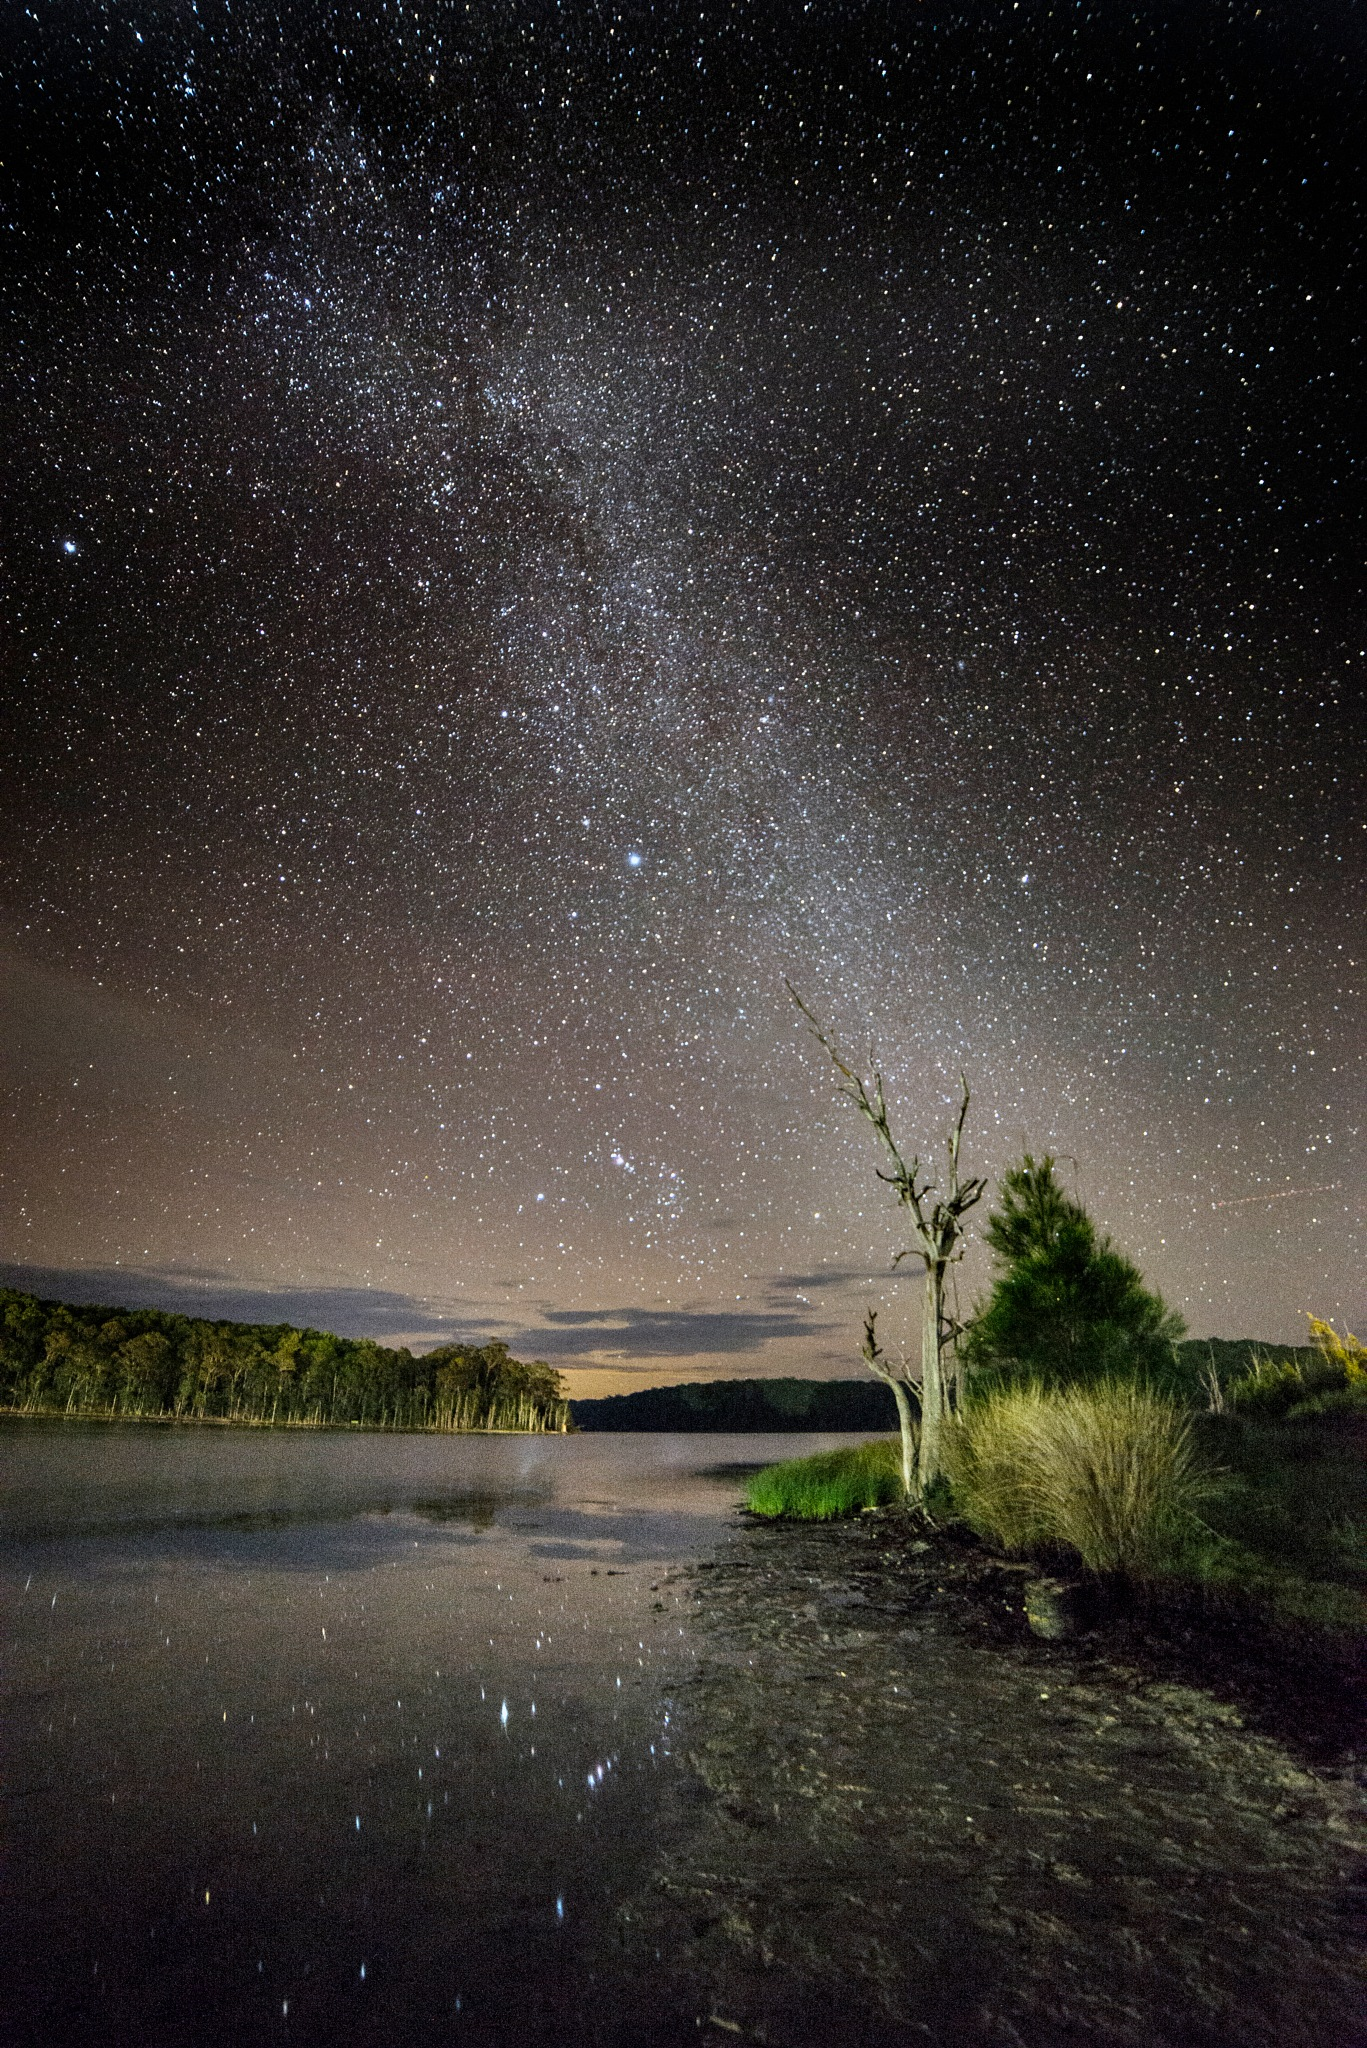 Paradise of Lake and Stars by Graham Levi